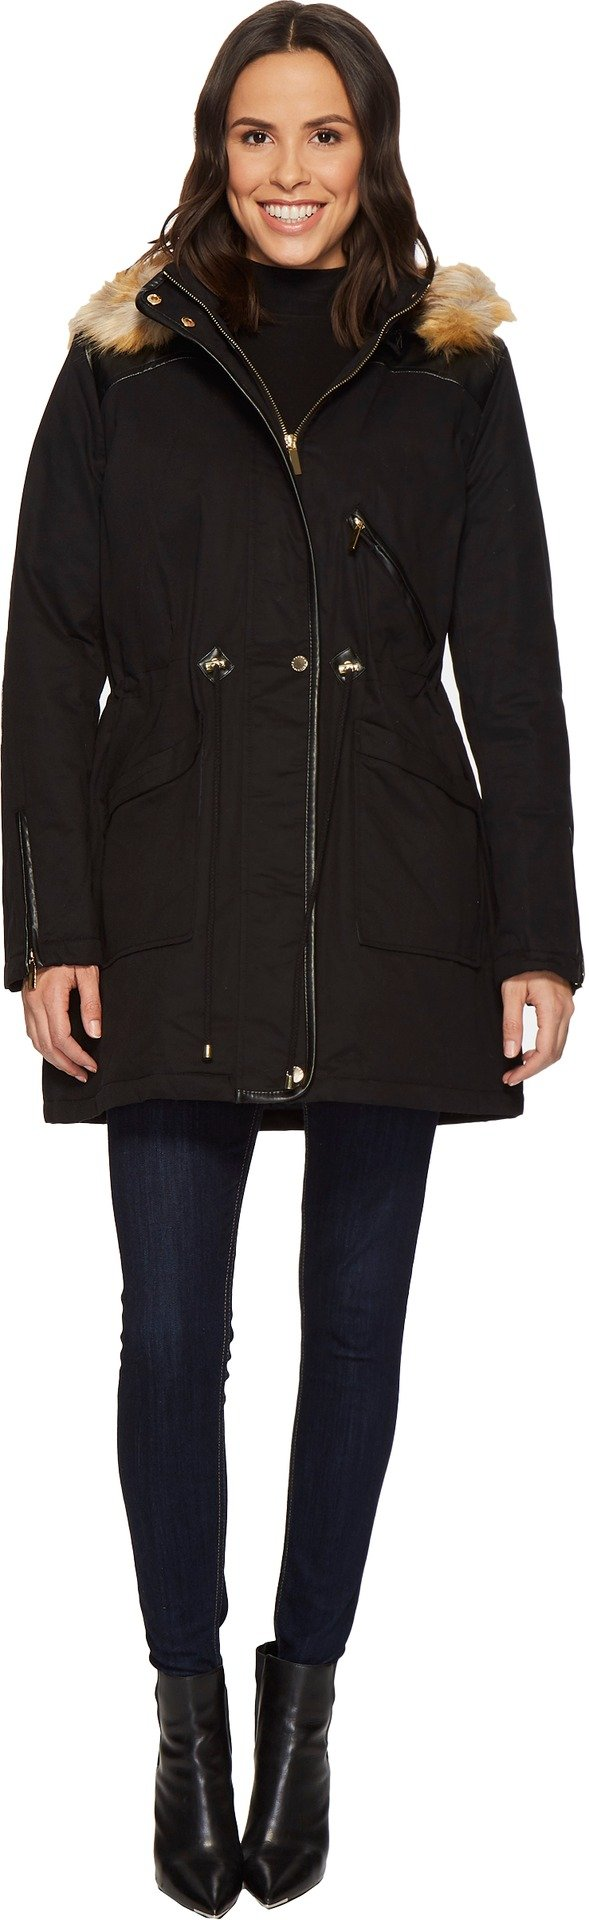 French Connection Womens Anorak Faux Fur Hood and Drawstring Waist Black XL One Size